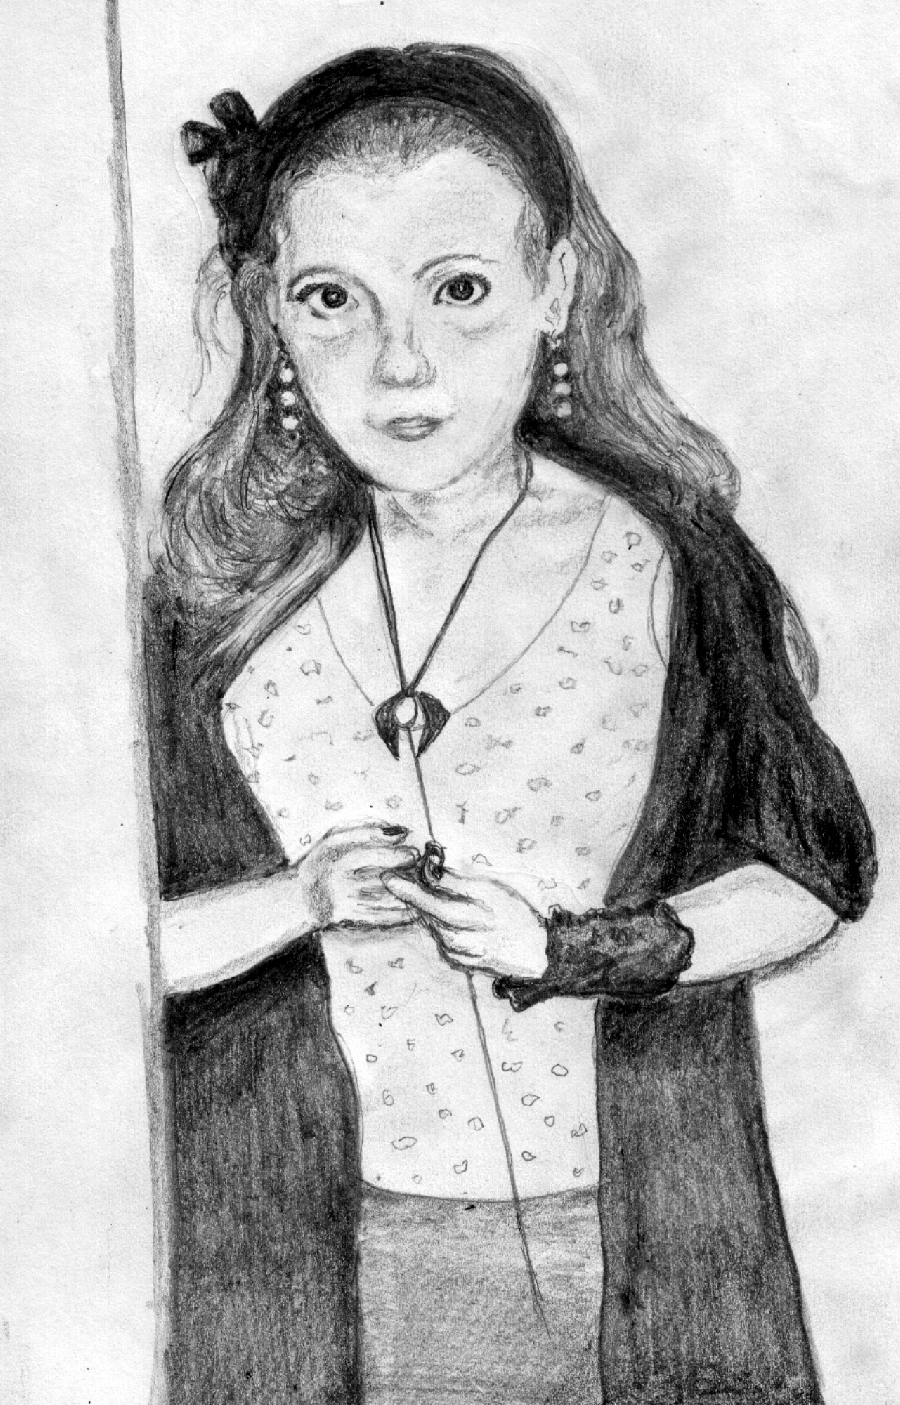 Girl wearing earrings and necklace by liggybird